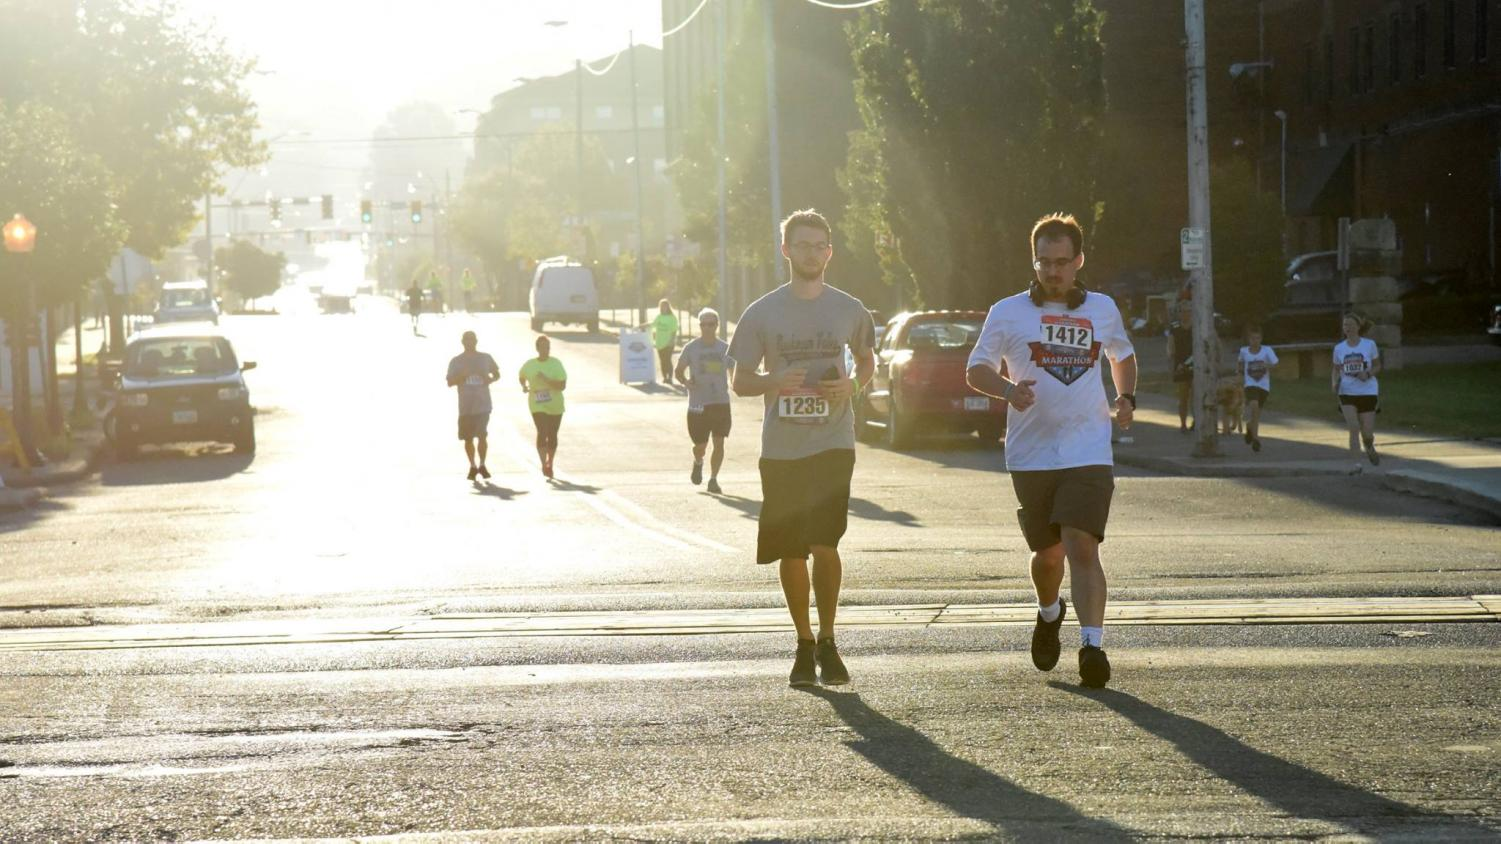 Runners Cameron Godfrey and Daniel Barr head toward the finish line during the 2018 5K race.